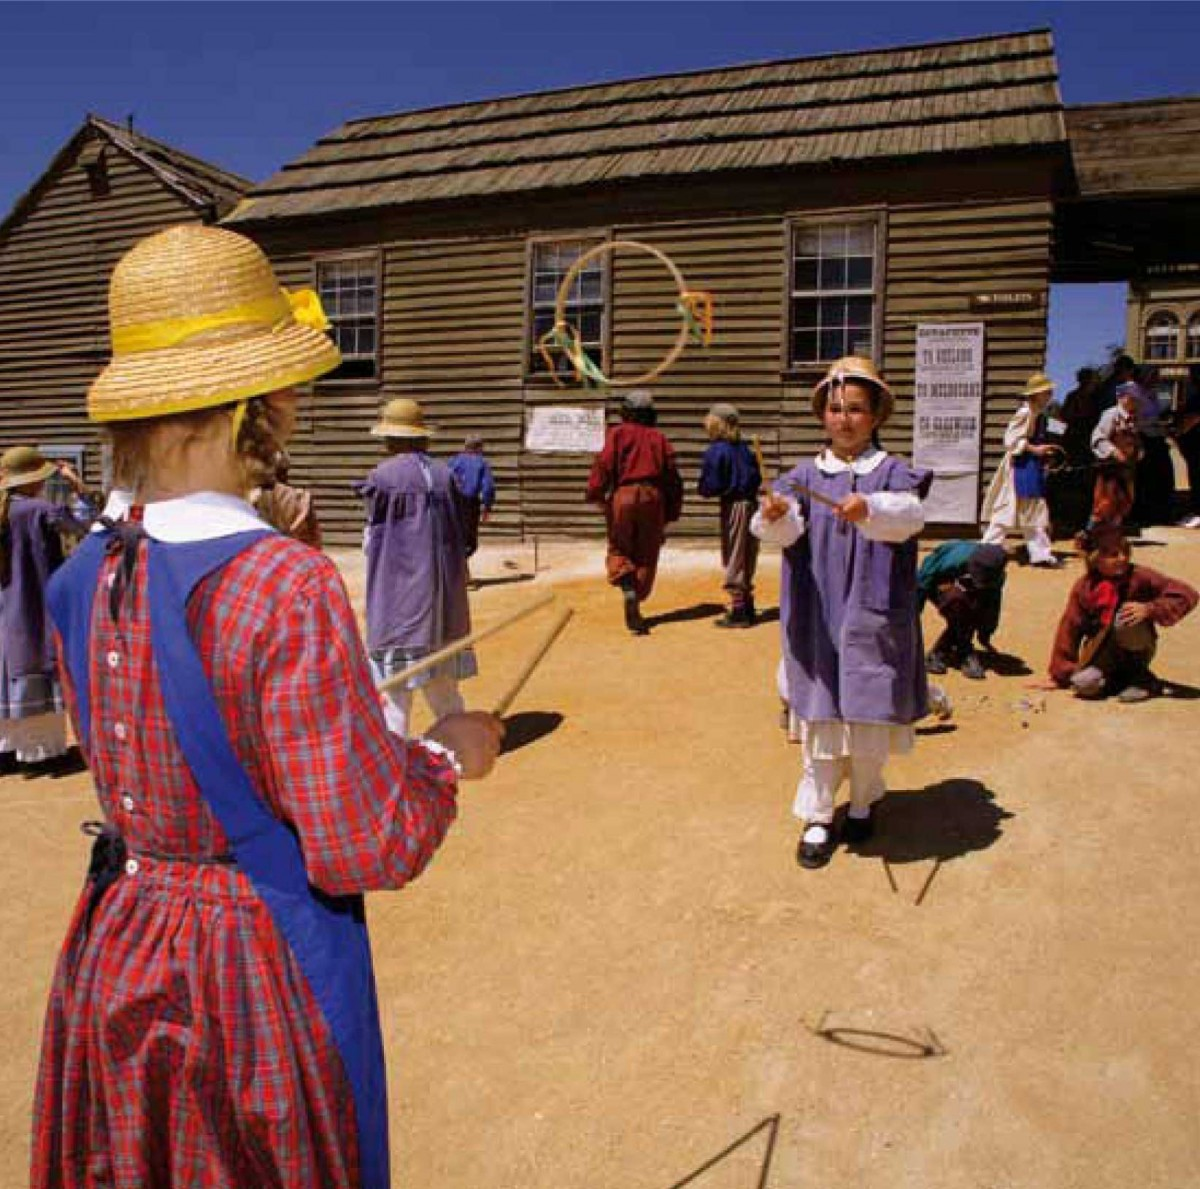 Dressed in 19th century-style clothing, and using classrooms and equipment typical of the era, students enjoy two memorable days in one of the four themed Sovereign Hill Schools as they role-play the lives of goldfields students and come to understand social conditions during the great Victorian Gold Rush.